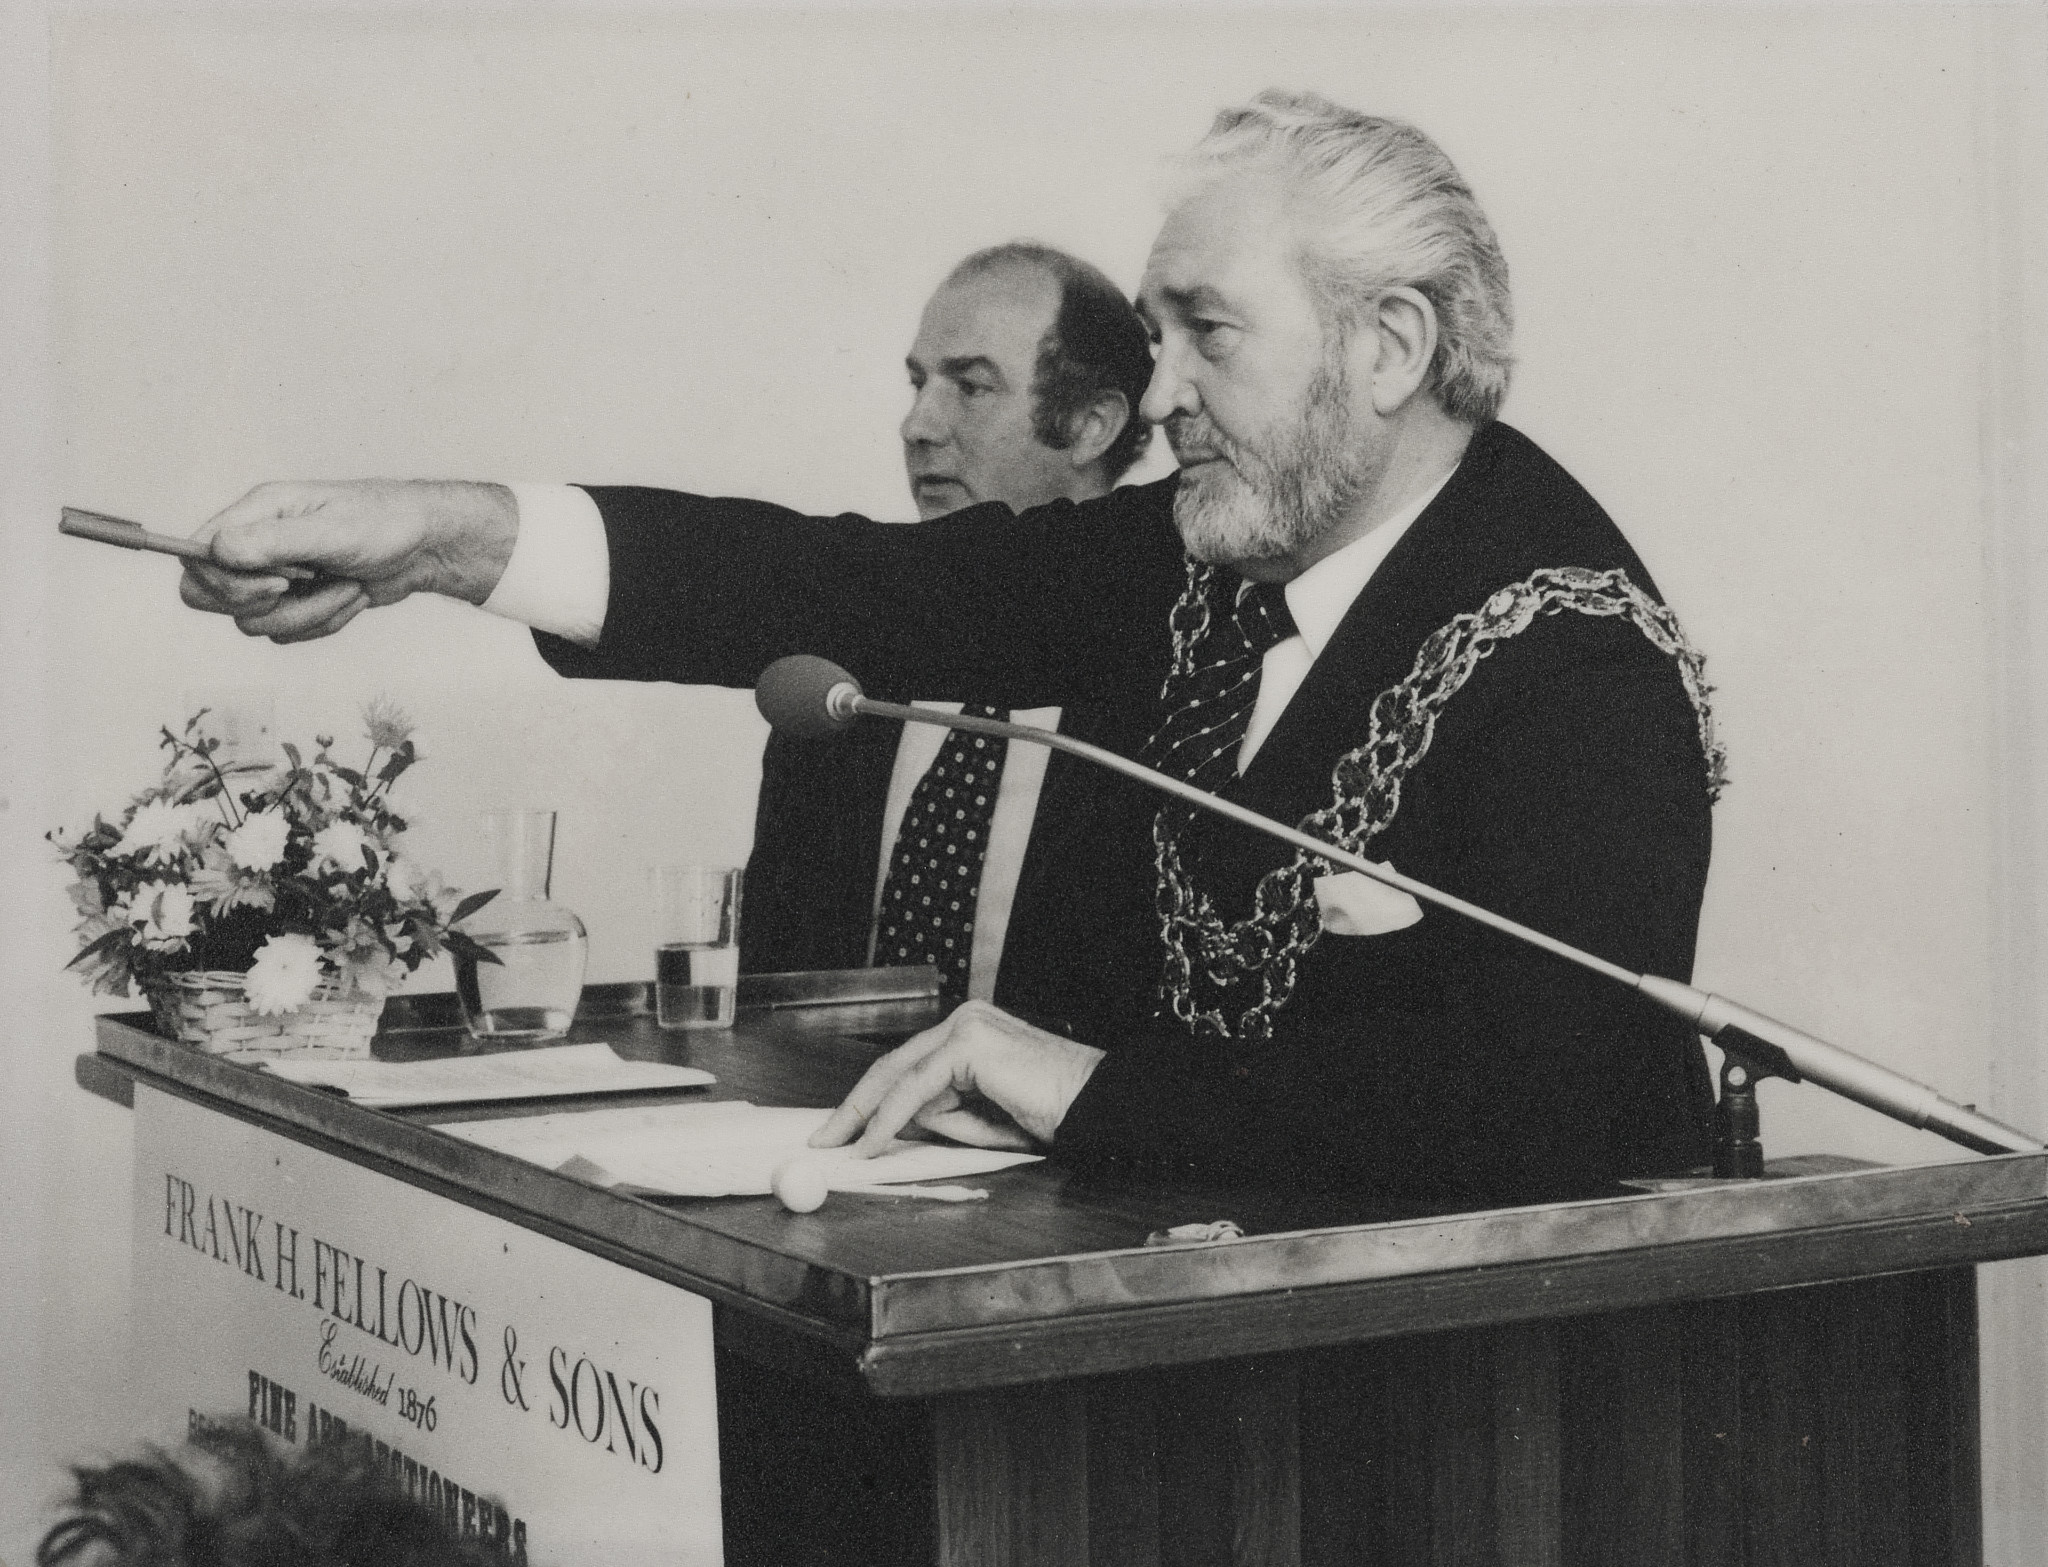 Antony Fellows and the Lord Mayor of Birmingham at one of their auctions.